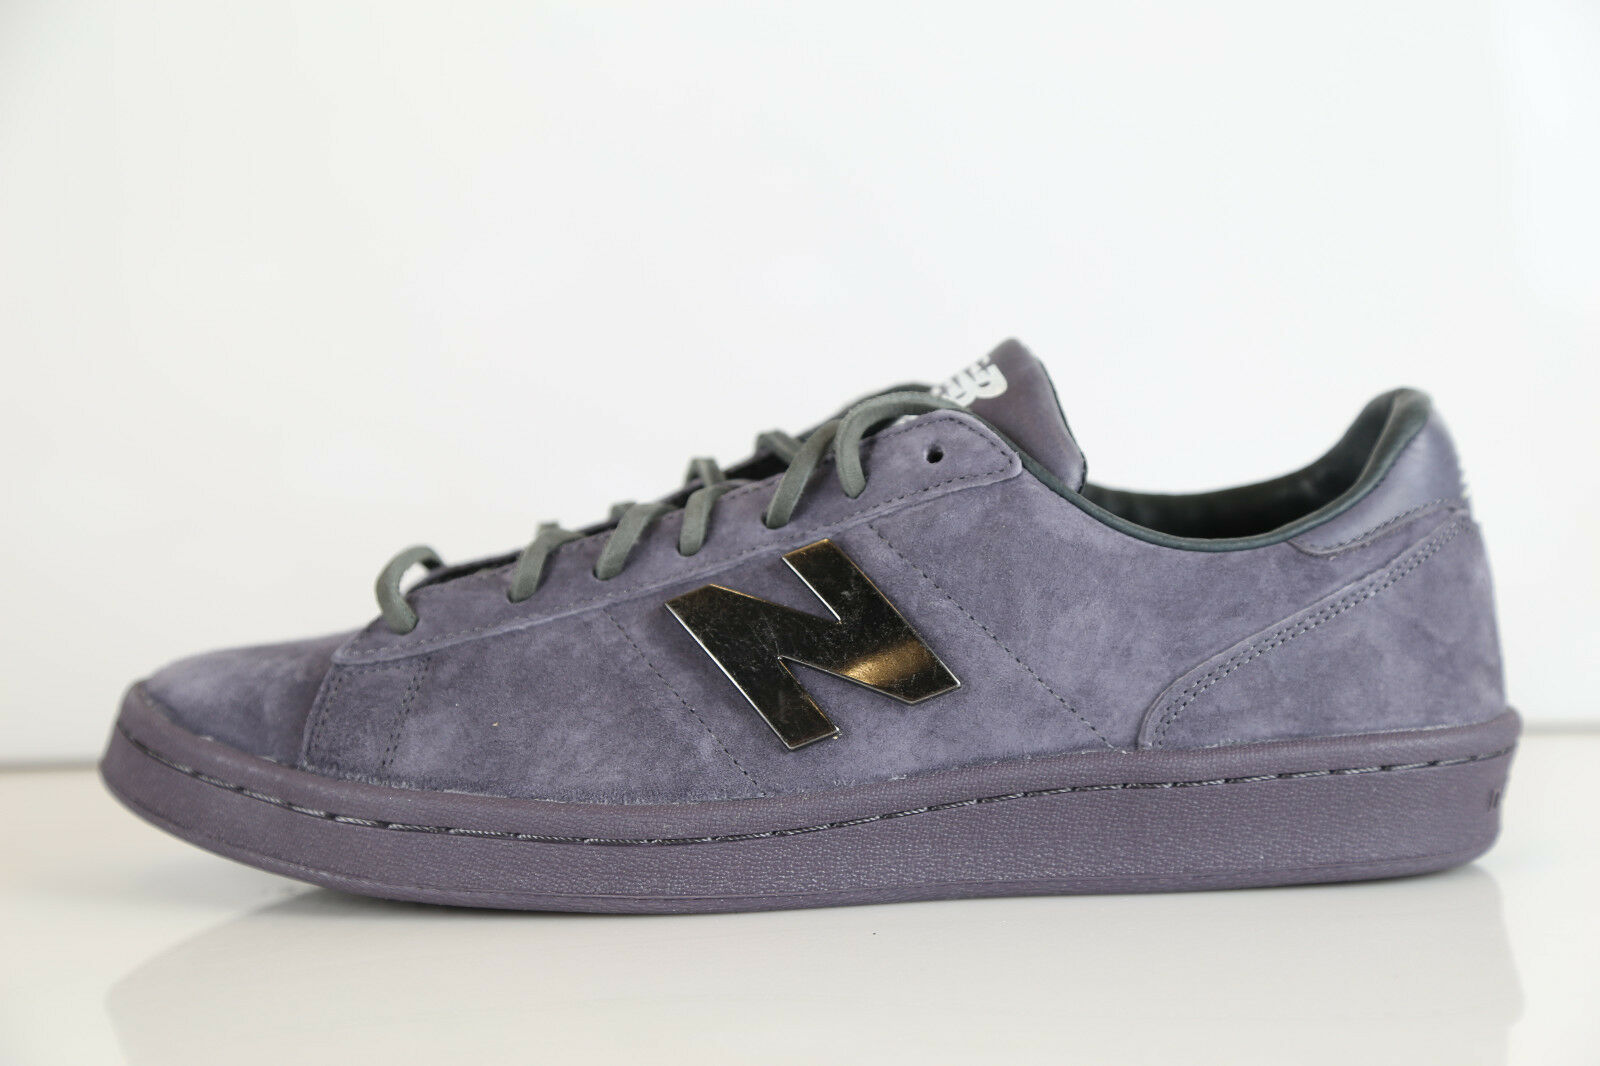 New Balance X Bait CT 791 Select Excalibur Grey Suede Pewter CT791B54 10.5 100 p